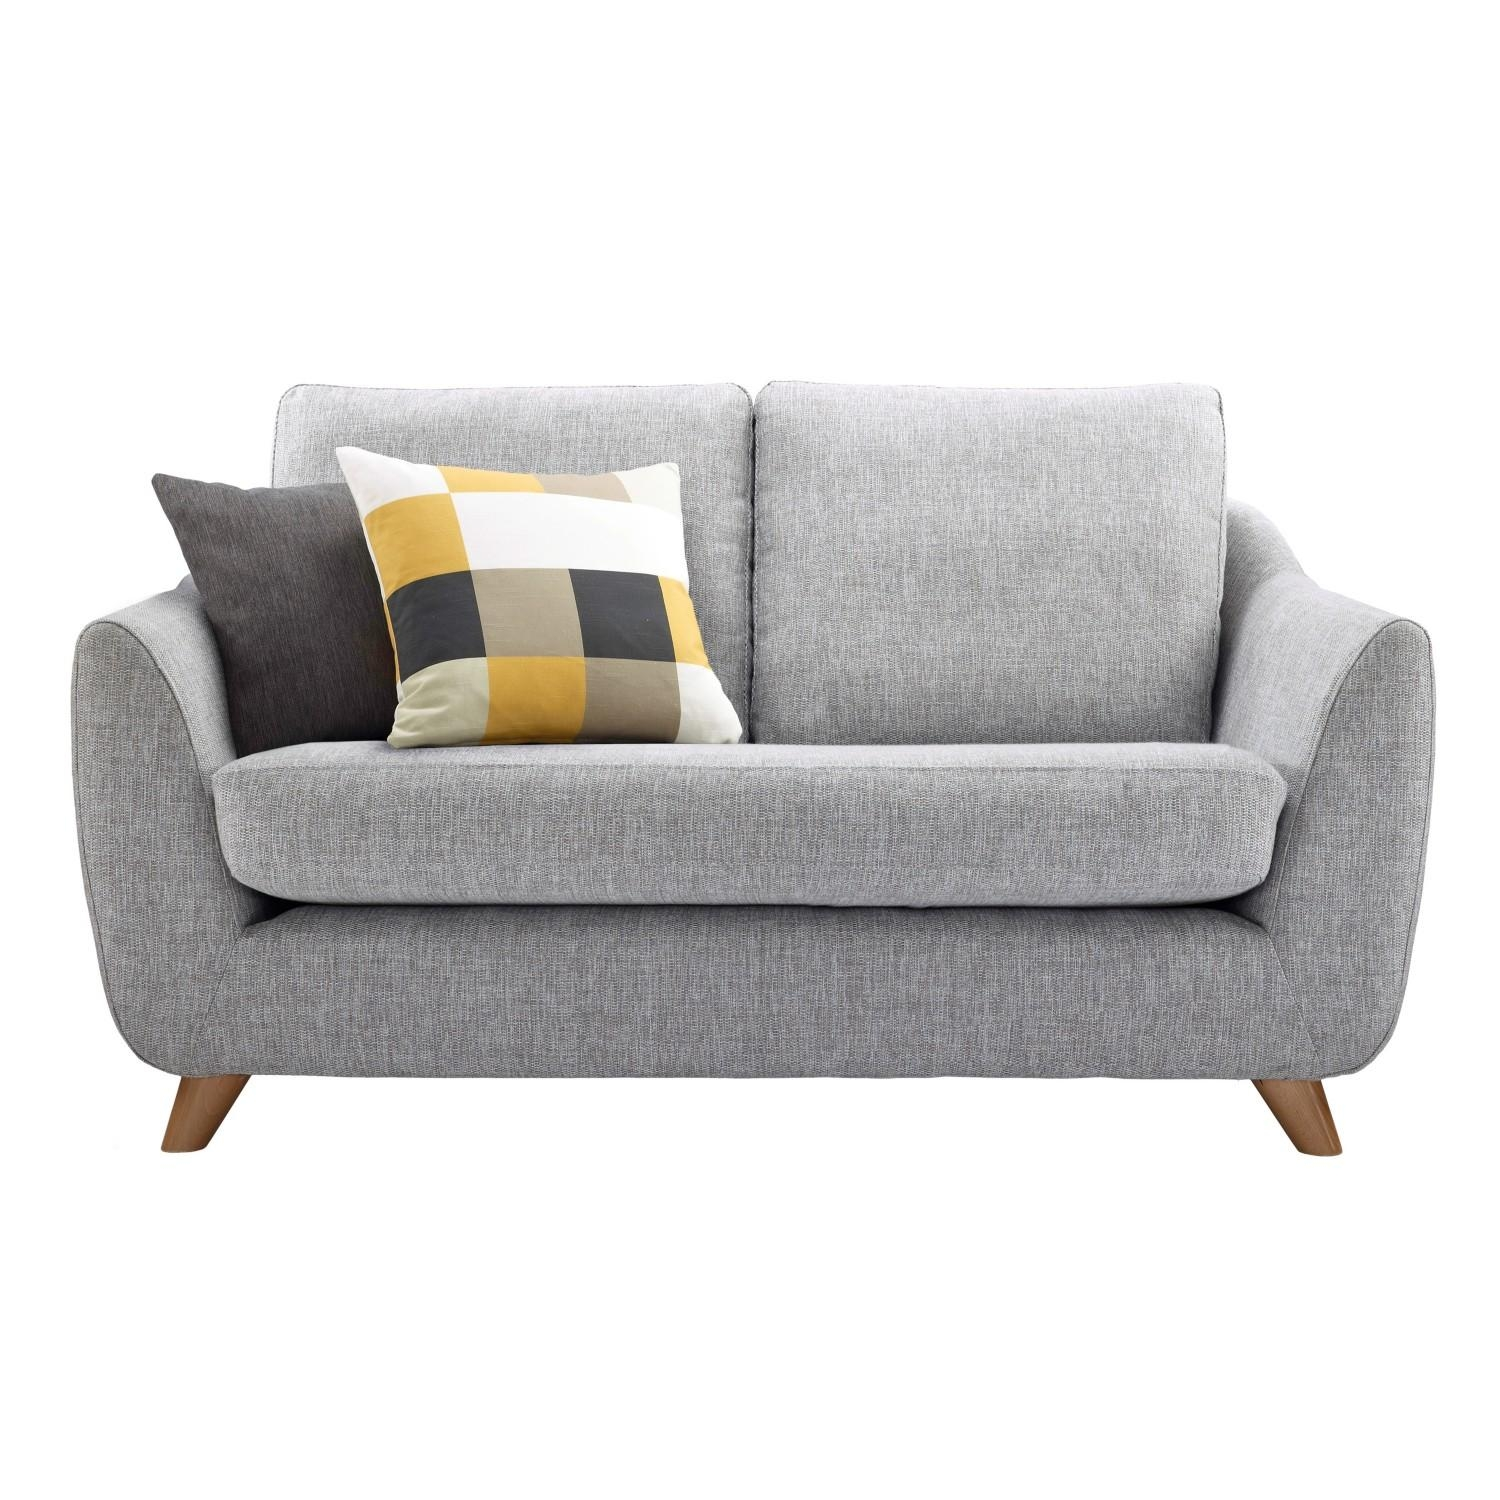 commercial sofas and chairs beach target 20 photos sofa ideas